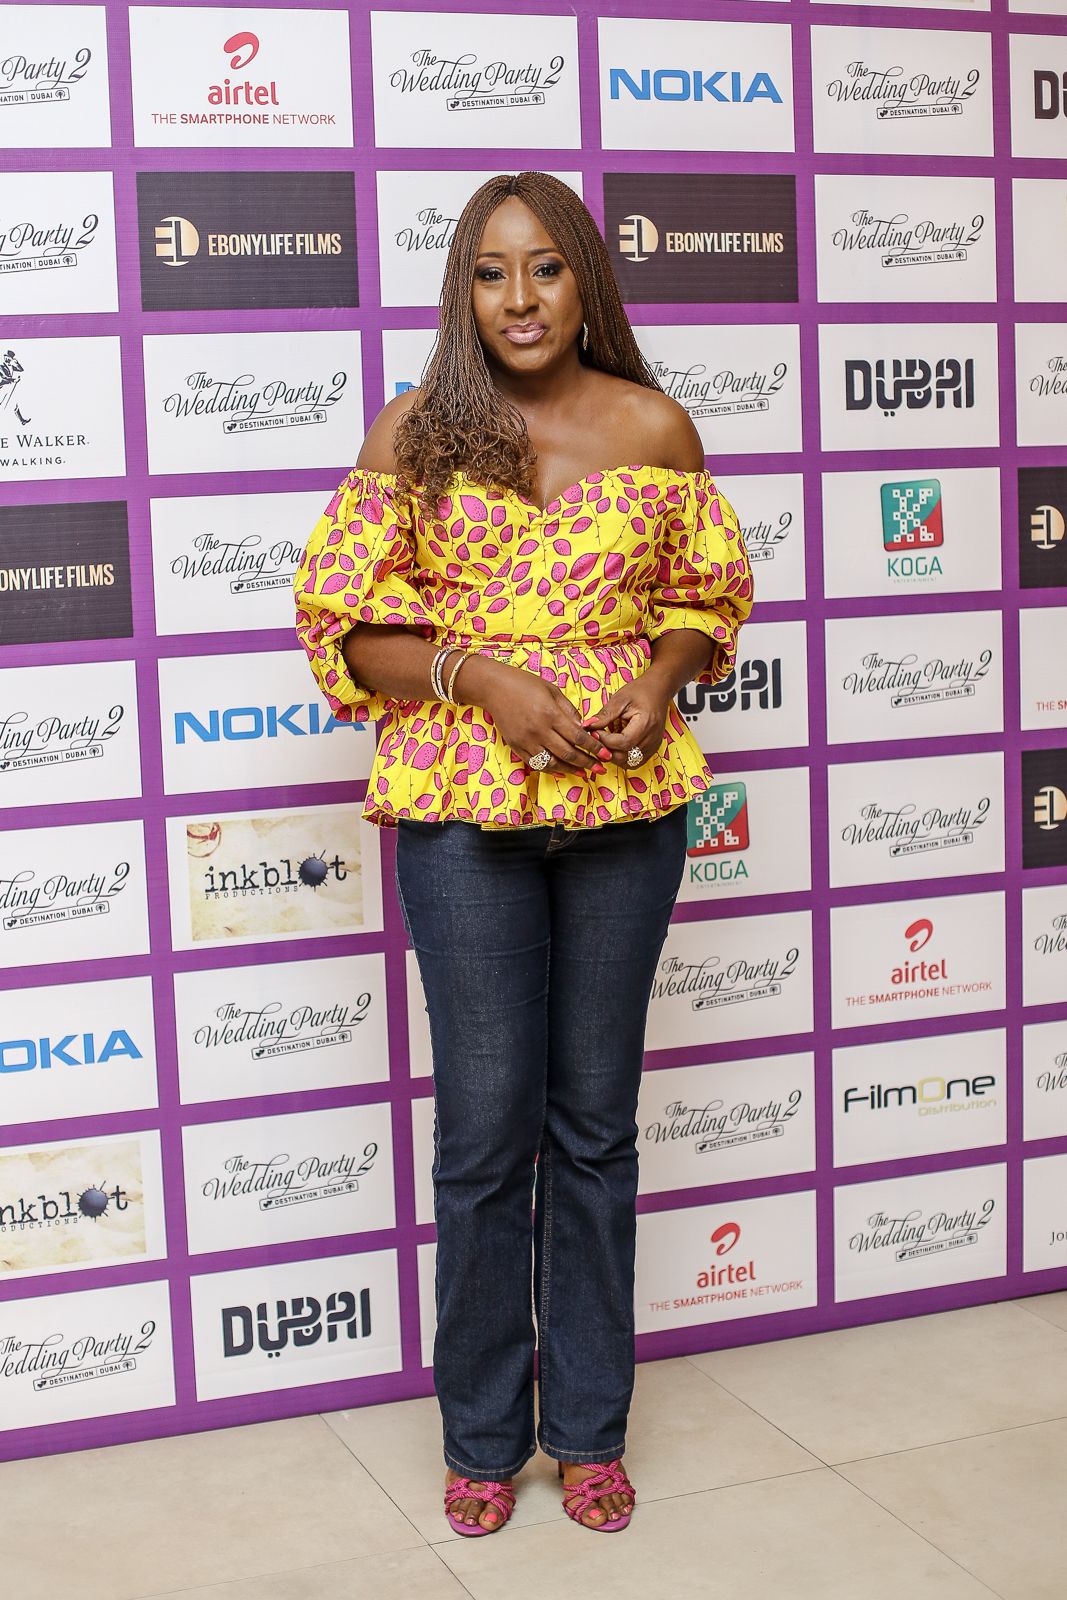 Iretiola Doyle1 - Highlights From The Early Screening Of The Wedding Party 2